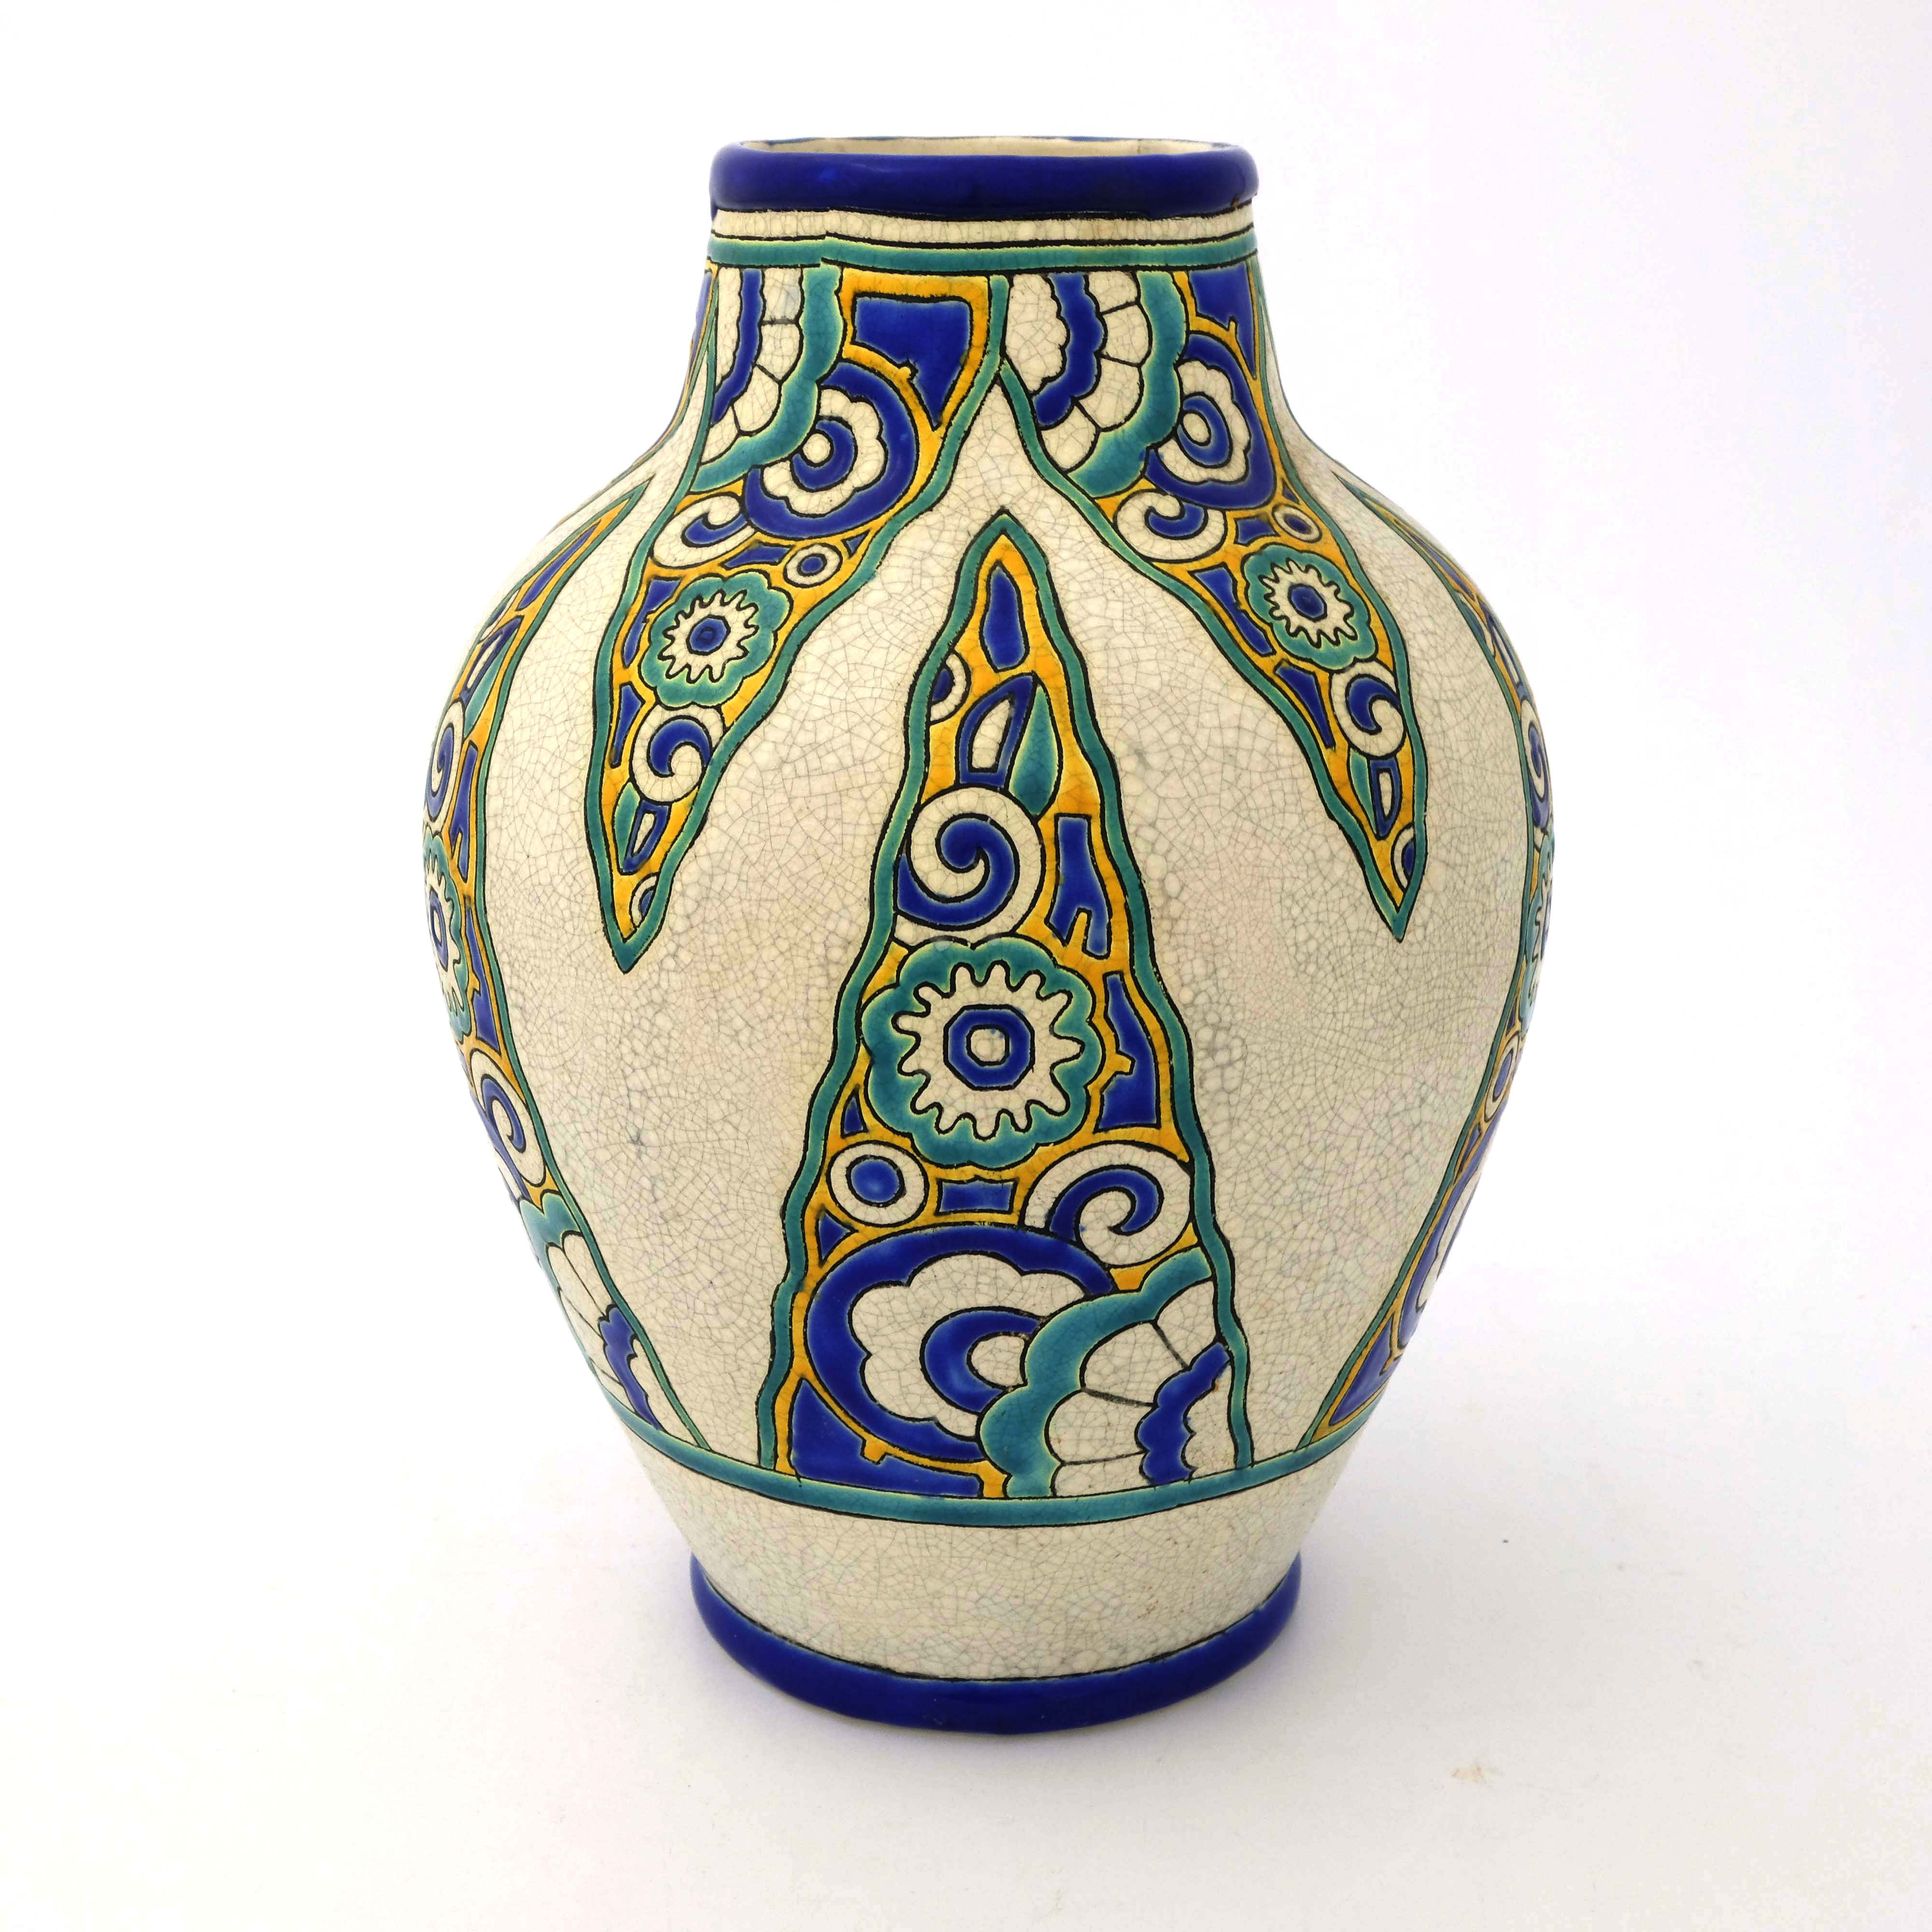 Charles Catteau for Boch Freres, an Art Deco vase - Image 3 of 5